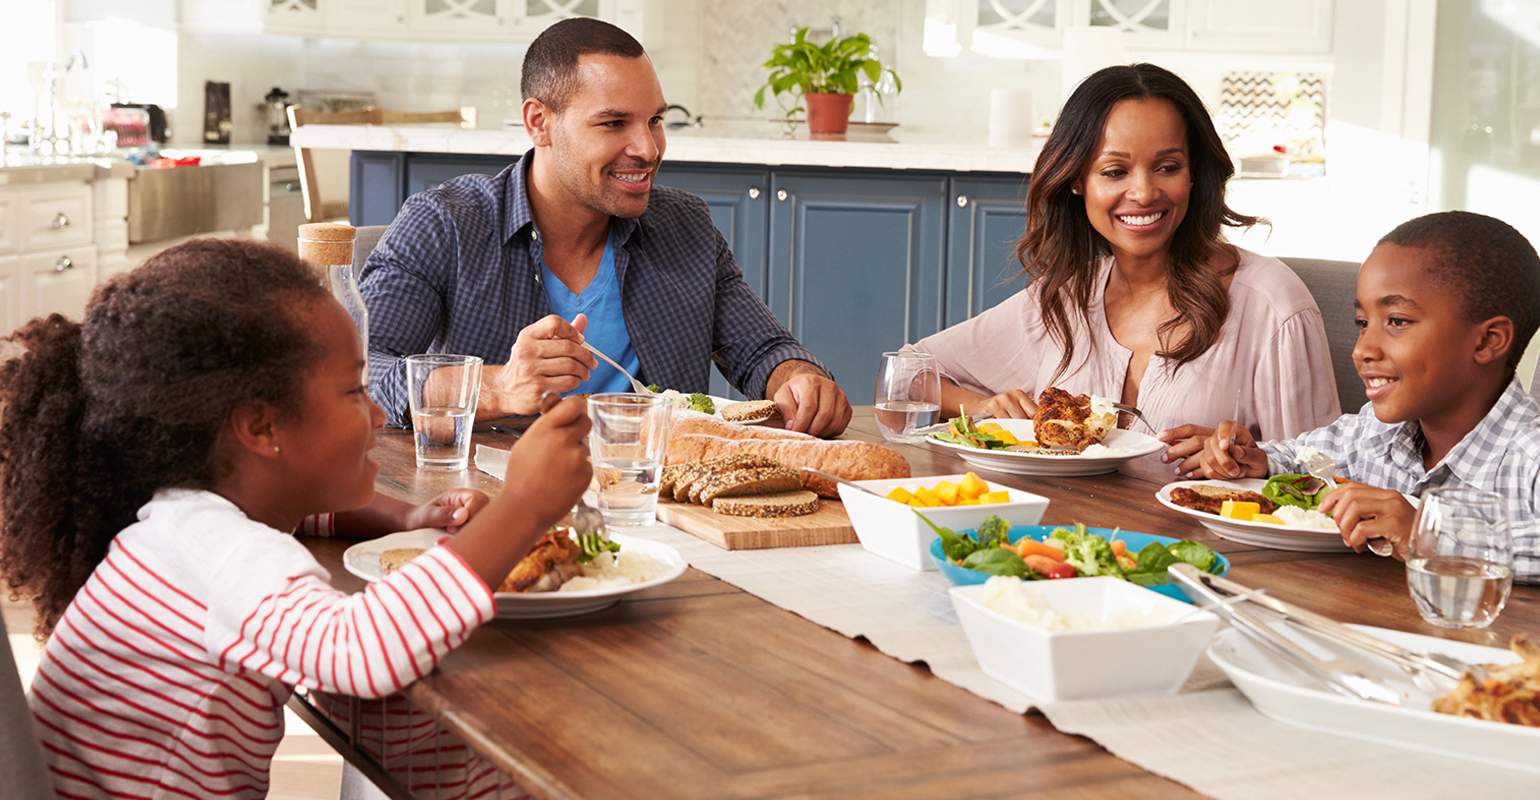 Eating home-cooked meals might mean fewer harmful PFAS in your body